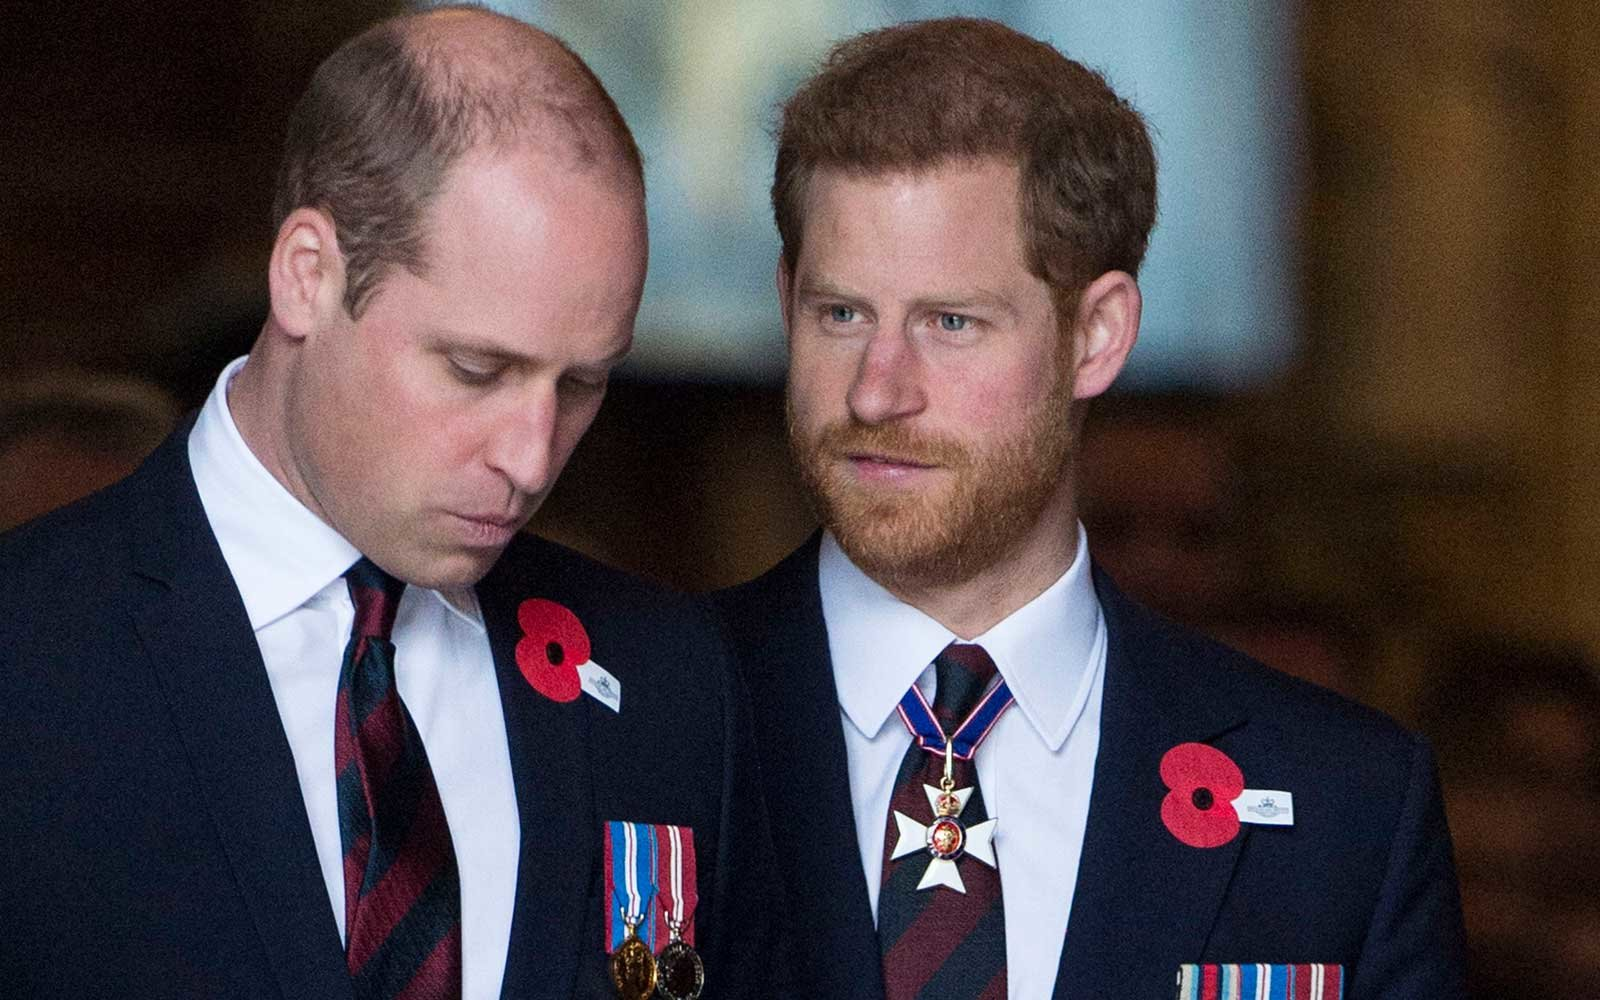 Prince Harry S Best Man Announcement Will Melt Your Heart